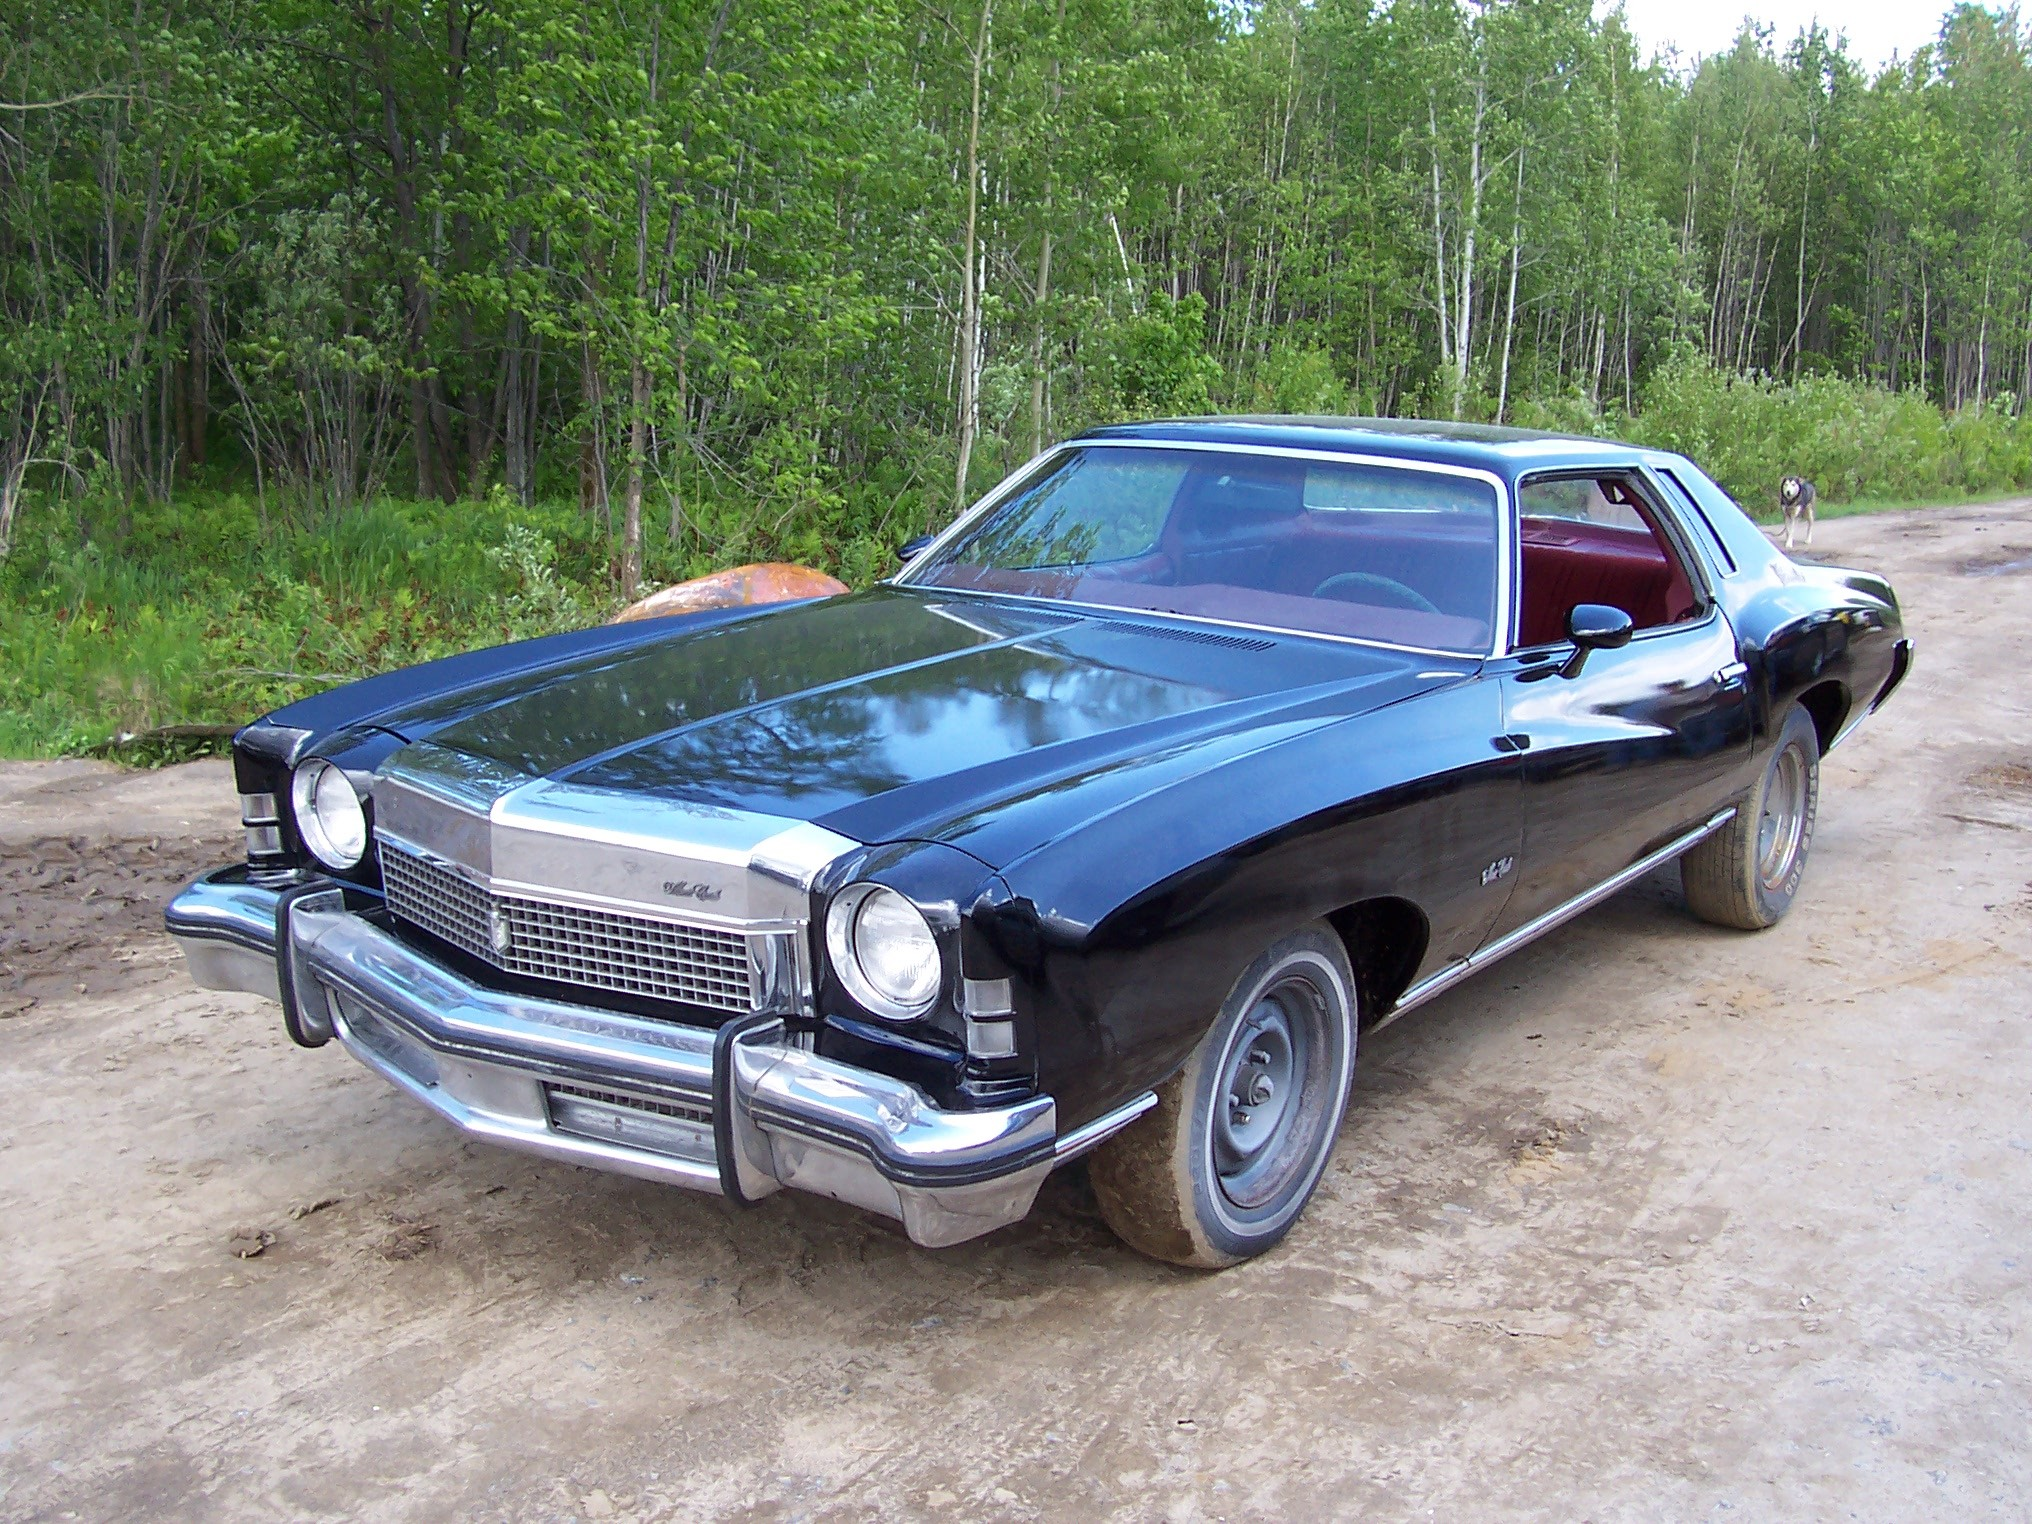 riviera71 1973 chevrolet monte carlo specs photos modification info at cardomain. Black Bedroom Furniture Sets. Home Design Ideas